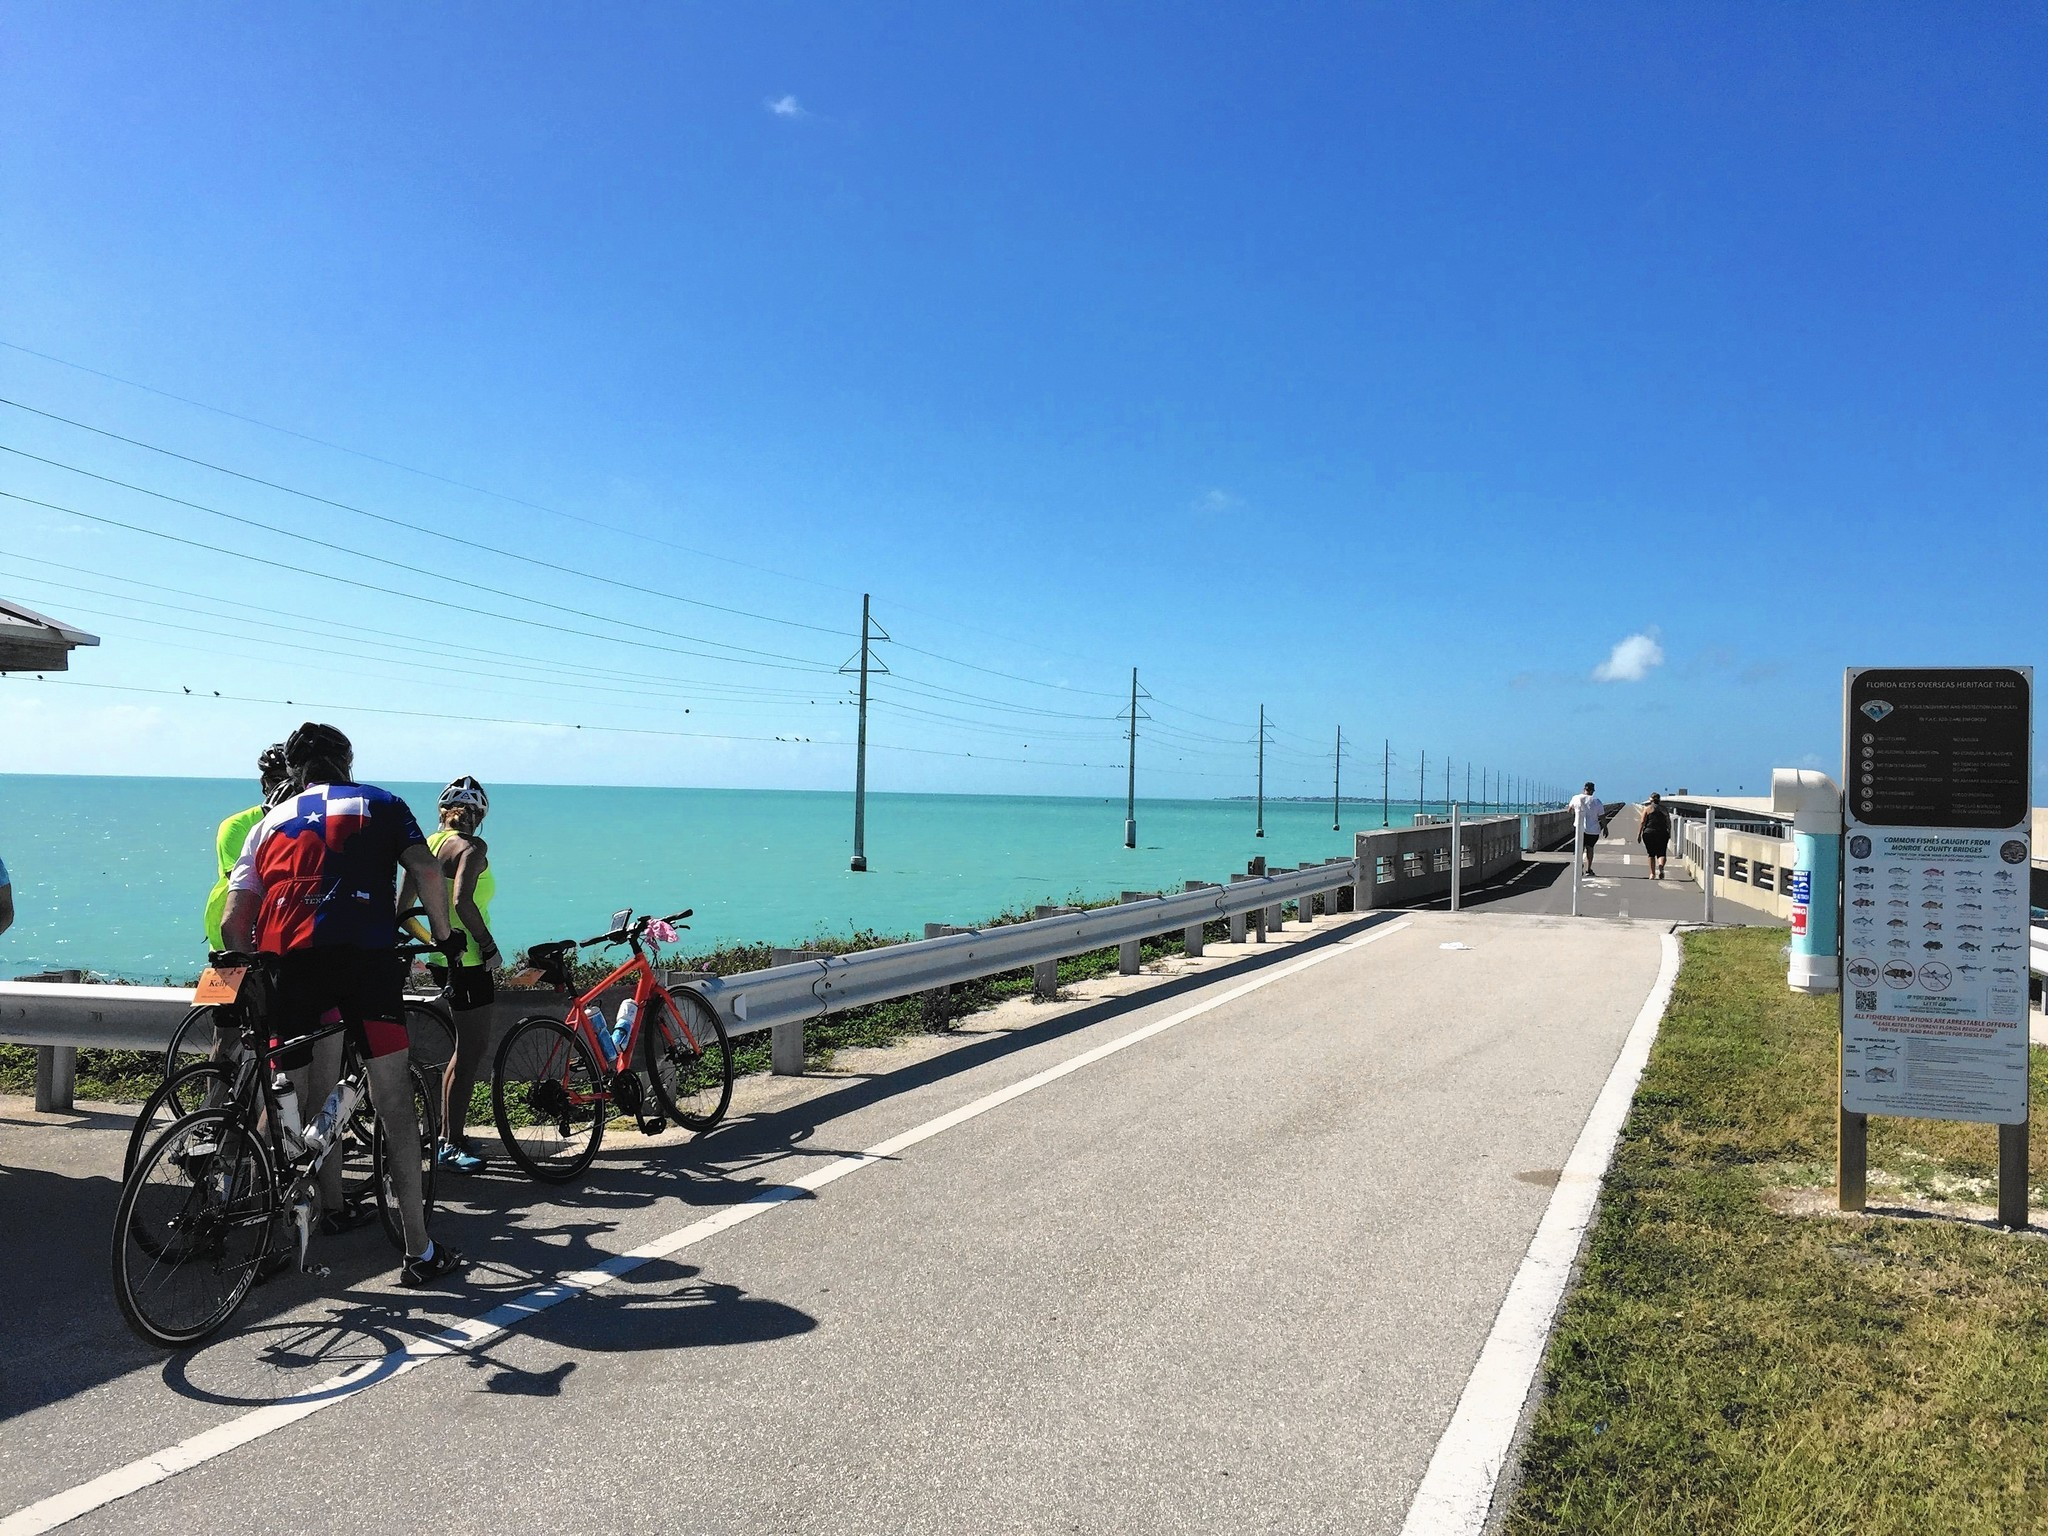 Florida road trip on two wheels: Biking from Key Largo to Key West